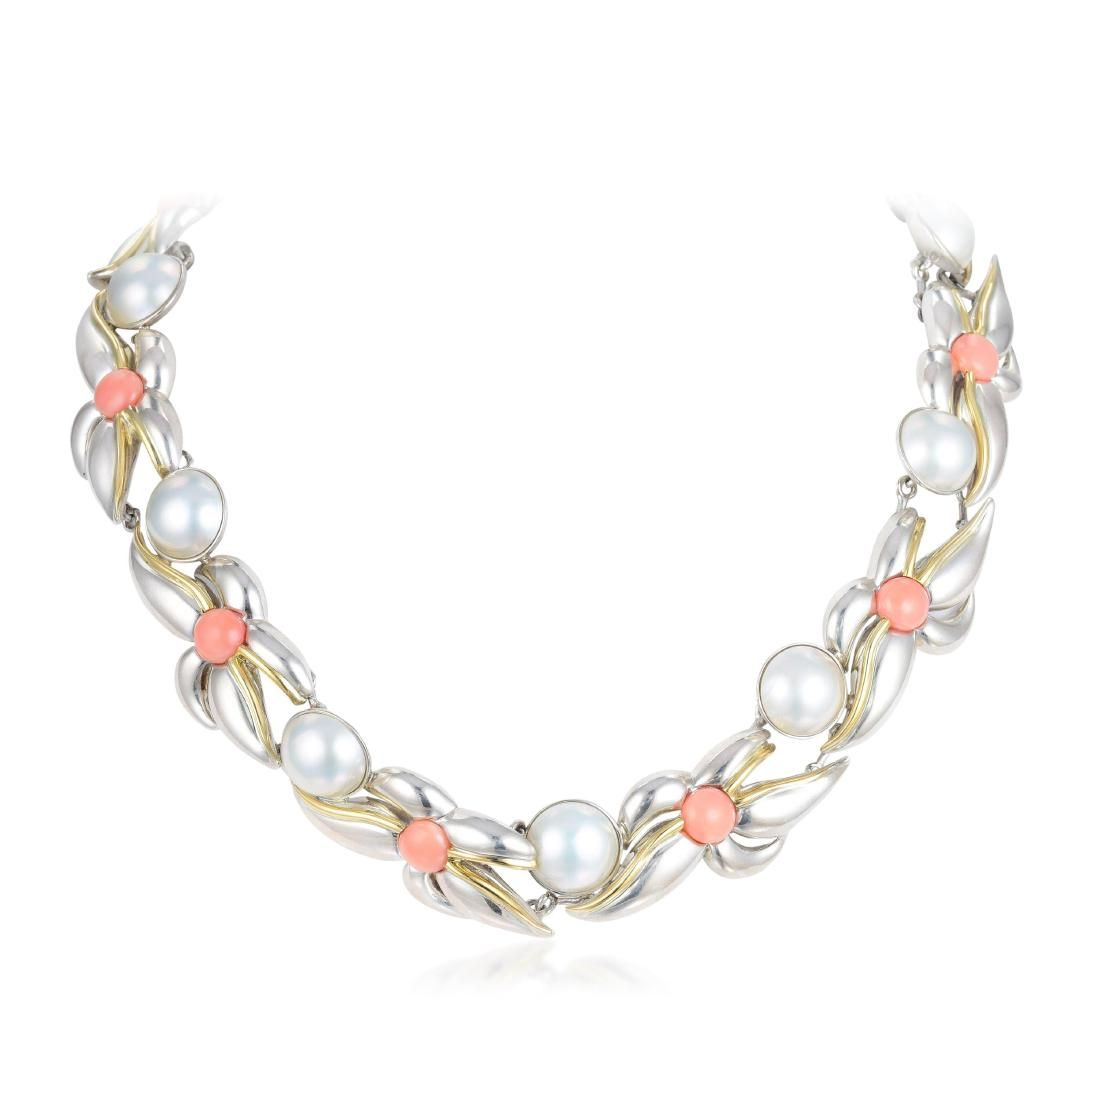 Tiffany & Co. Pearl and Coral Sterling Silver Necklace